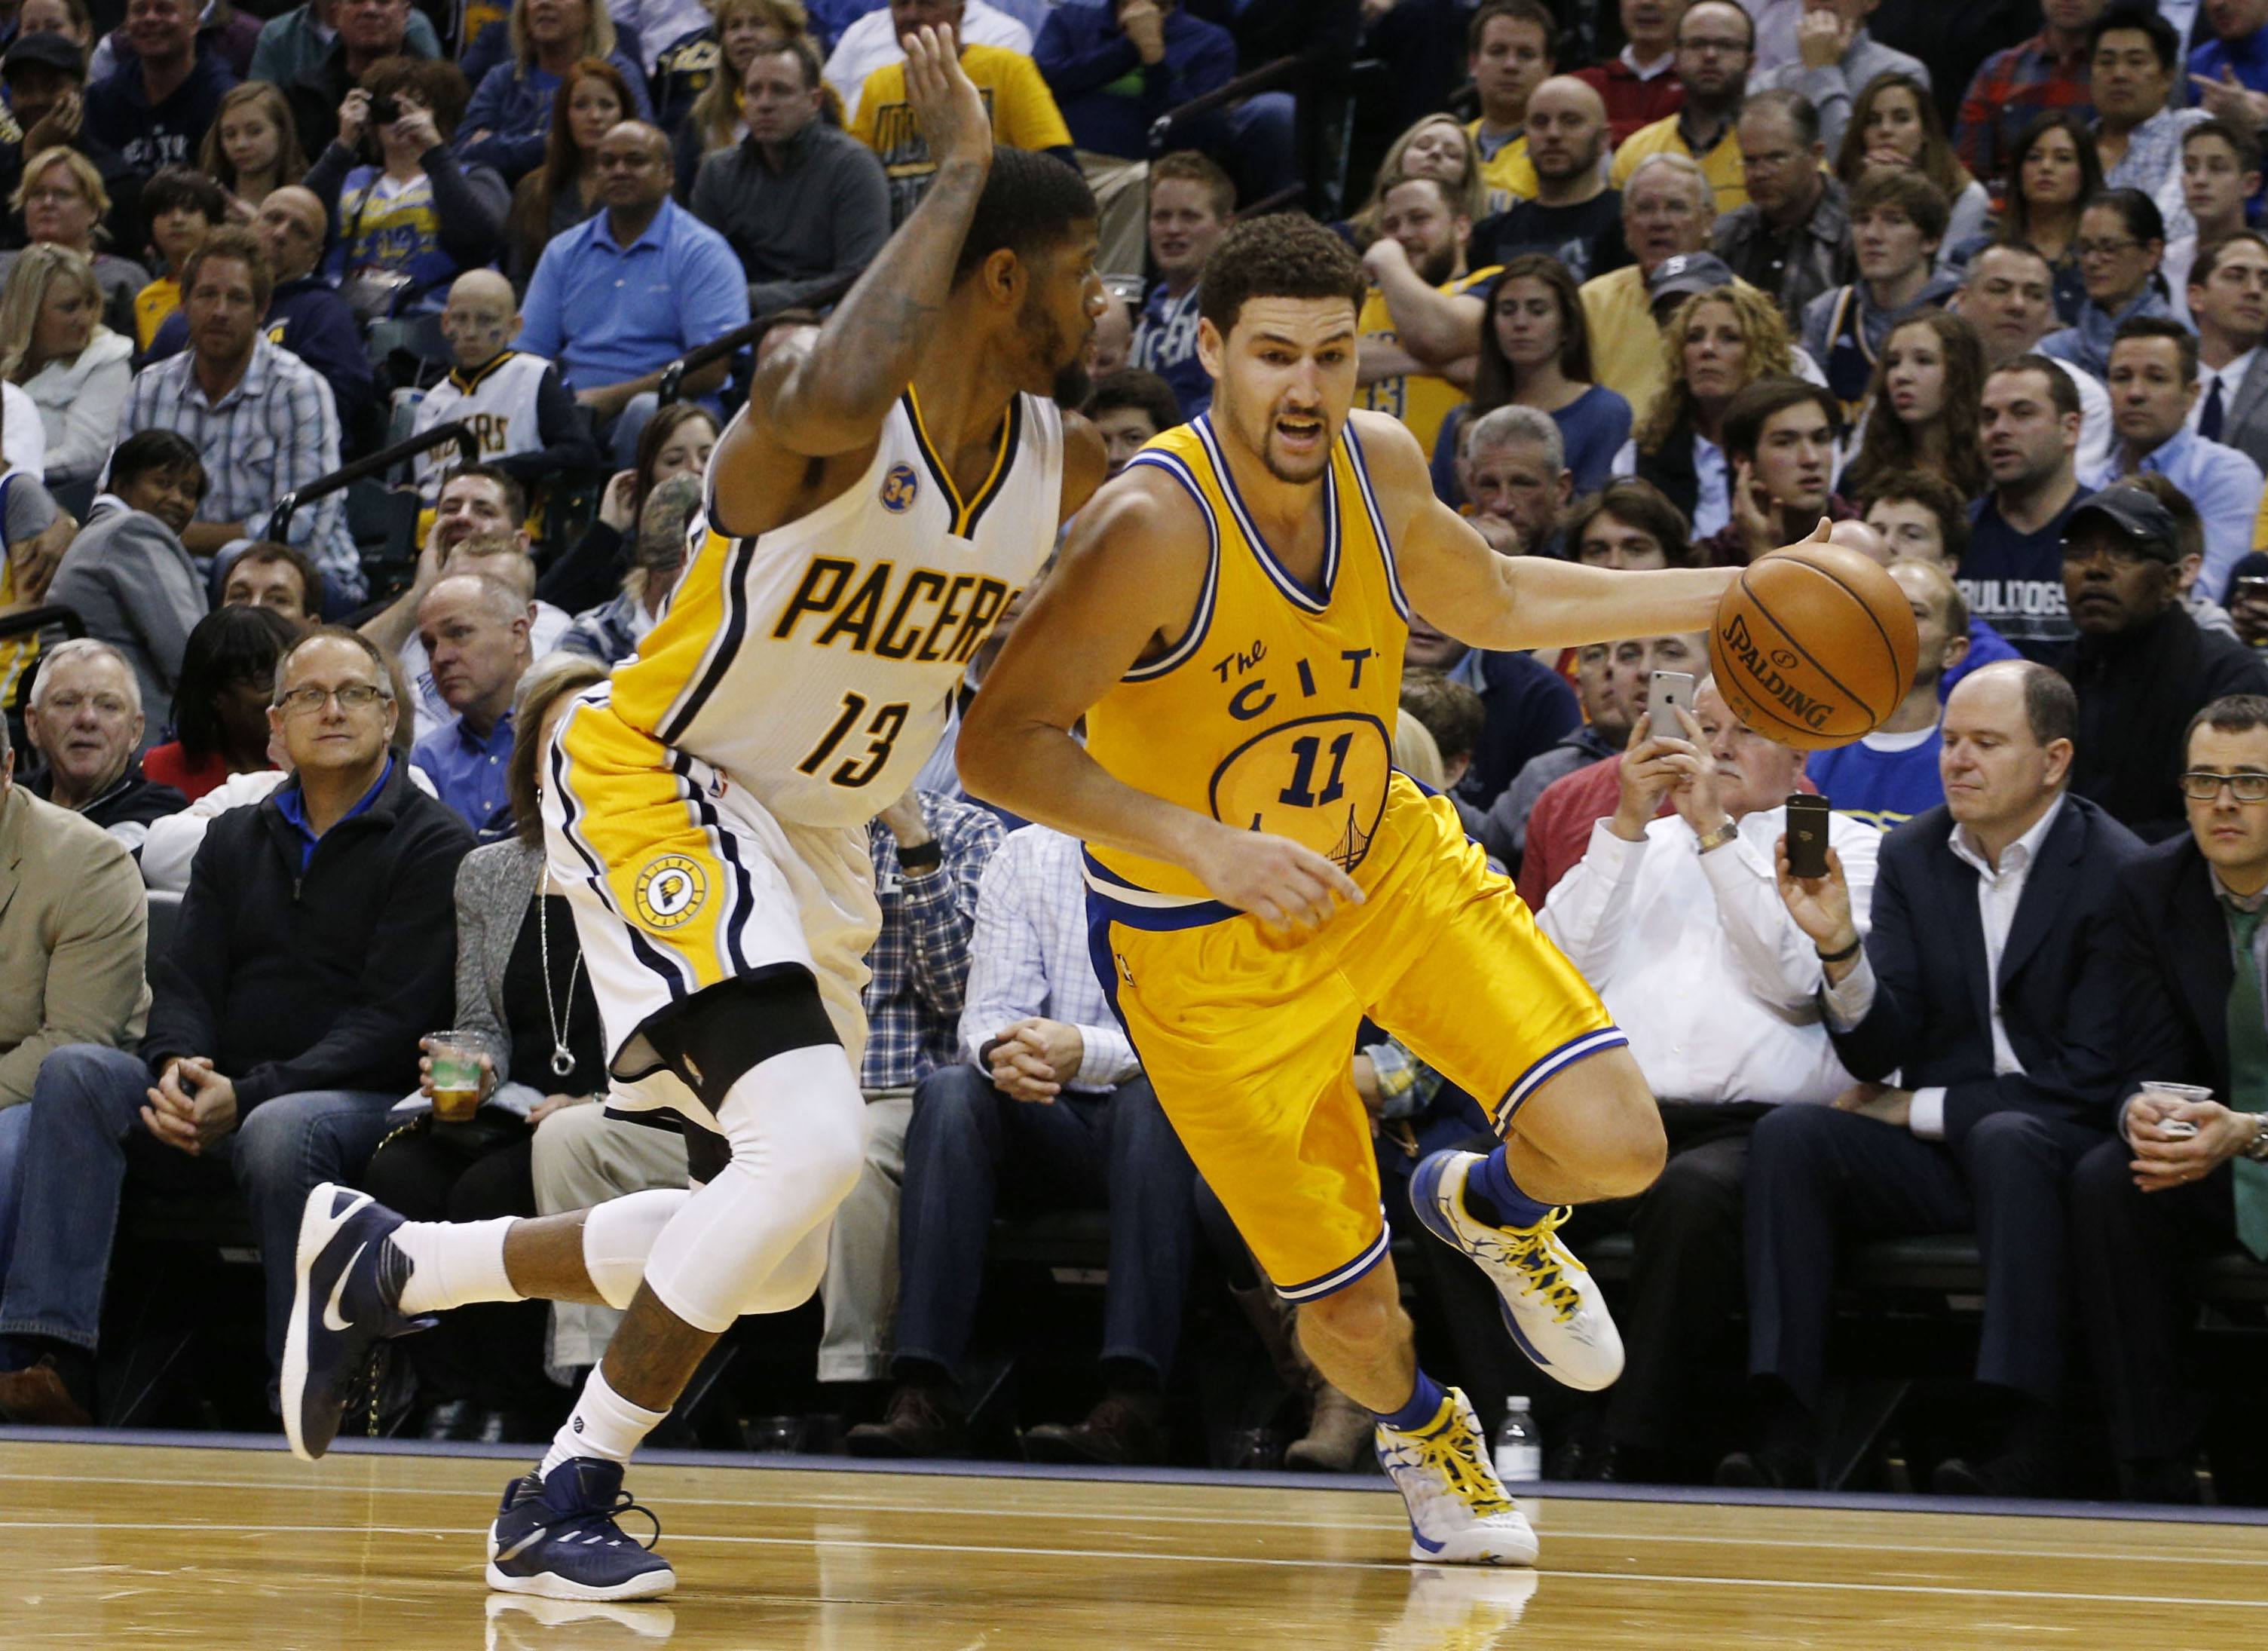 8985033-nba-golden-state-warriors-at-indiana-pacers